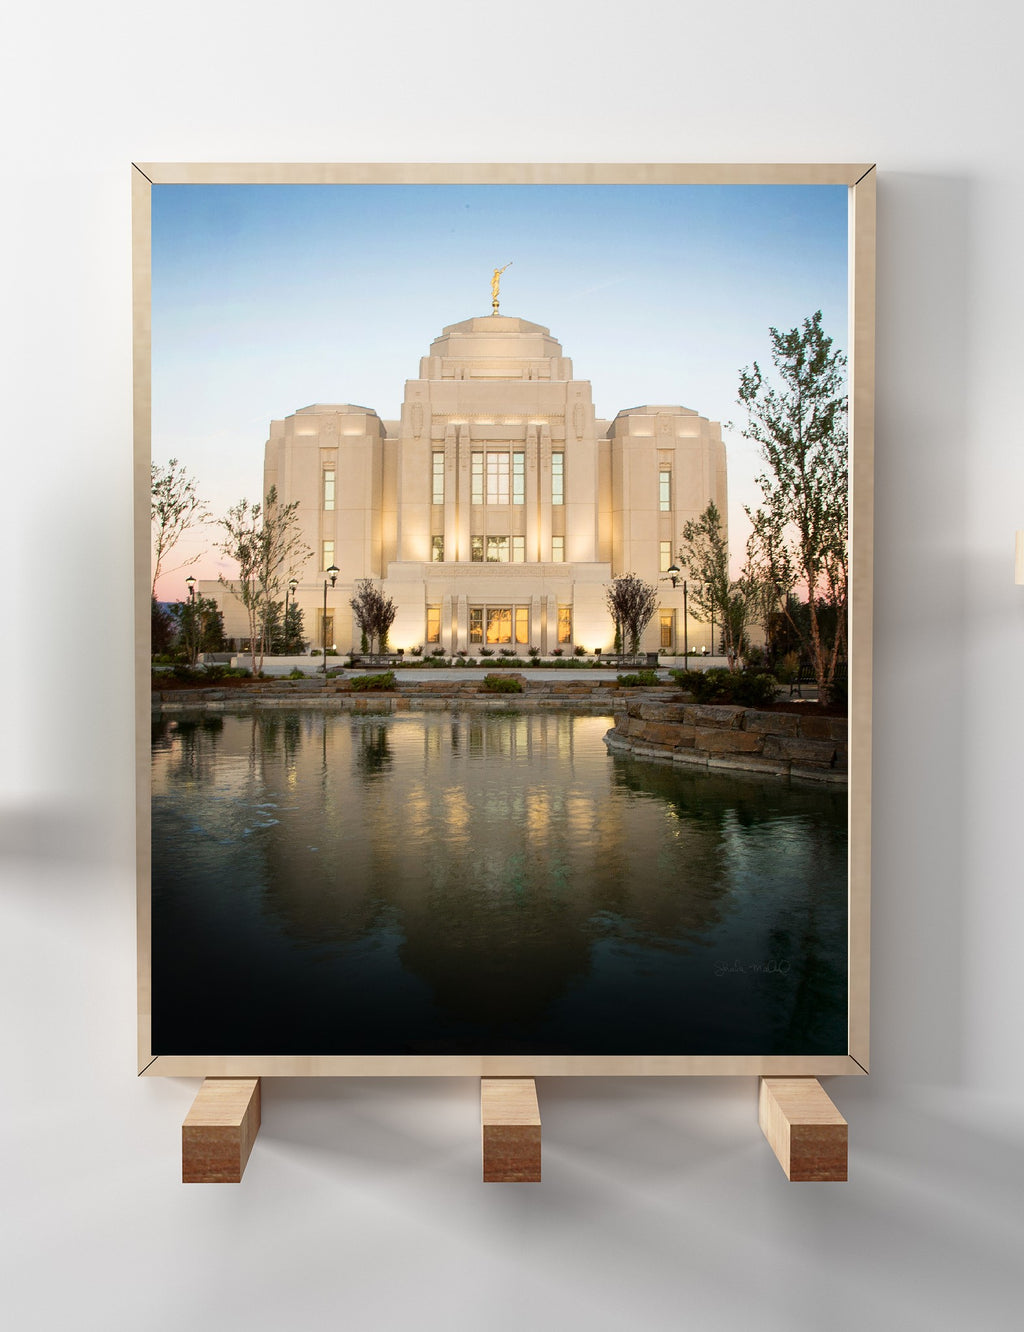 The temple can be a place of quiet personal reflection for members of the LDS faith, and this print by Meridian, Idaho artist Sheila Madine portrays that, even on the outside of the building. This print is available in a variety of formats for both home decor and gift giving. Not all formats available on website. temple+lds+meridian+idaho+temples+wedding+photographer+mormon+prints+art+madine+creative+group+canvas